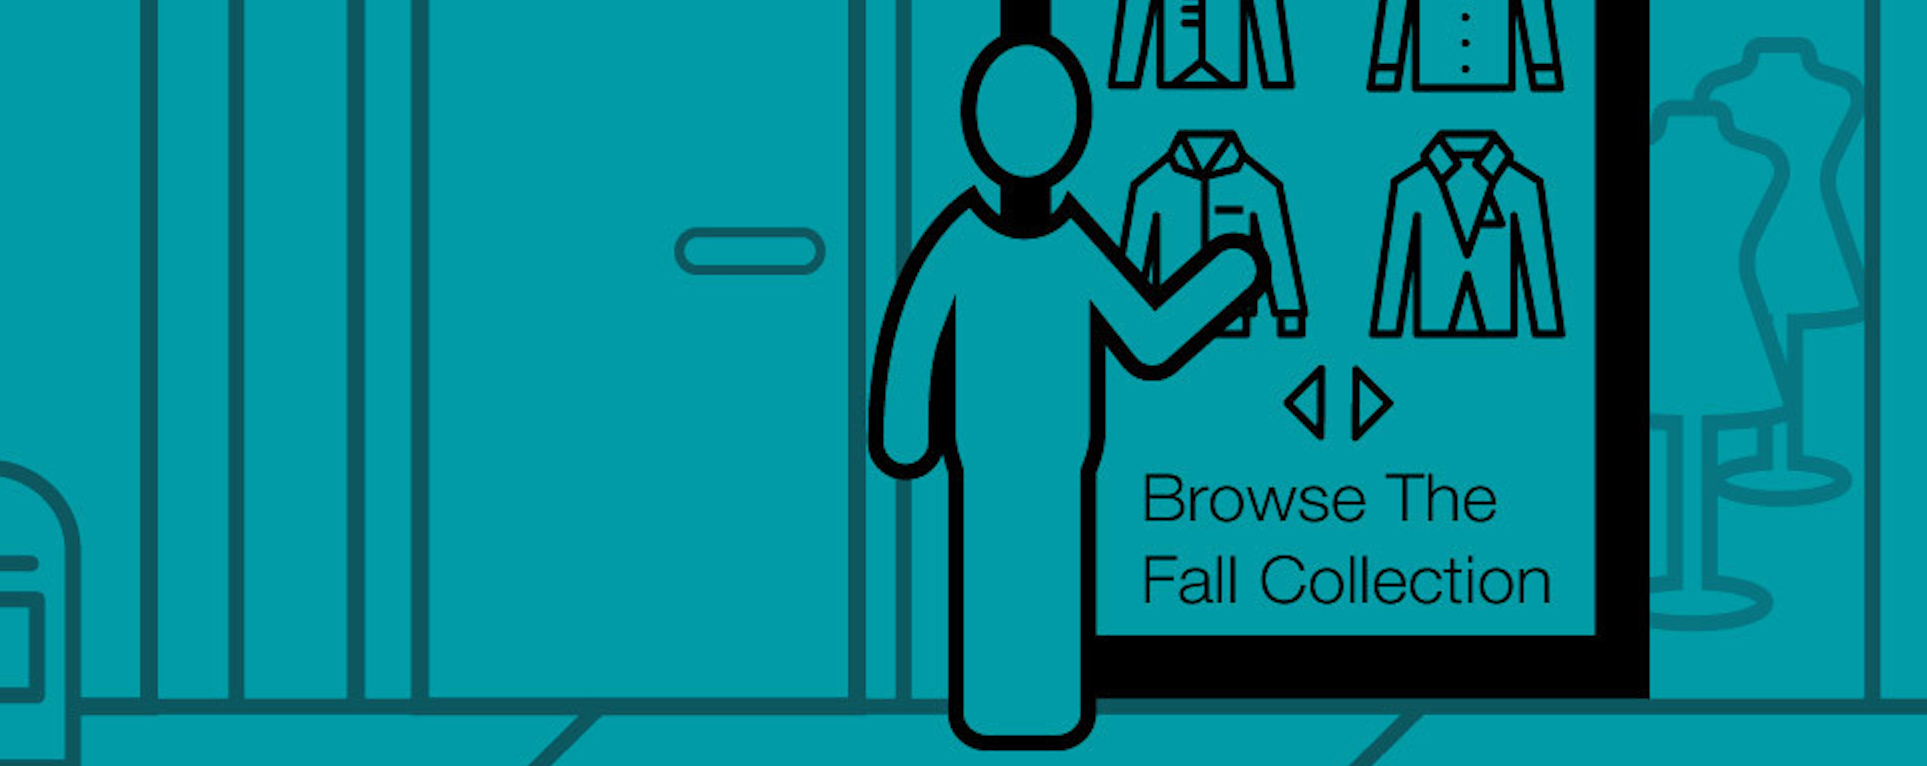 The interactive storefront offers retailers a new way to engage with customers.